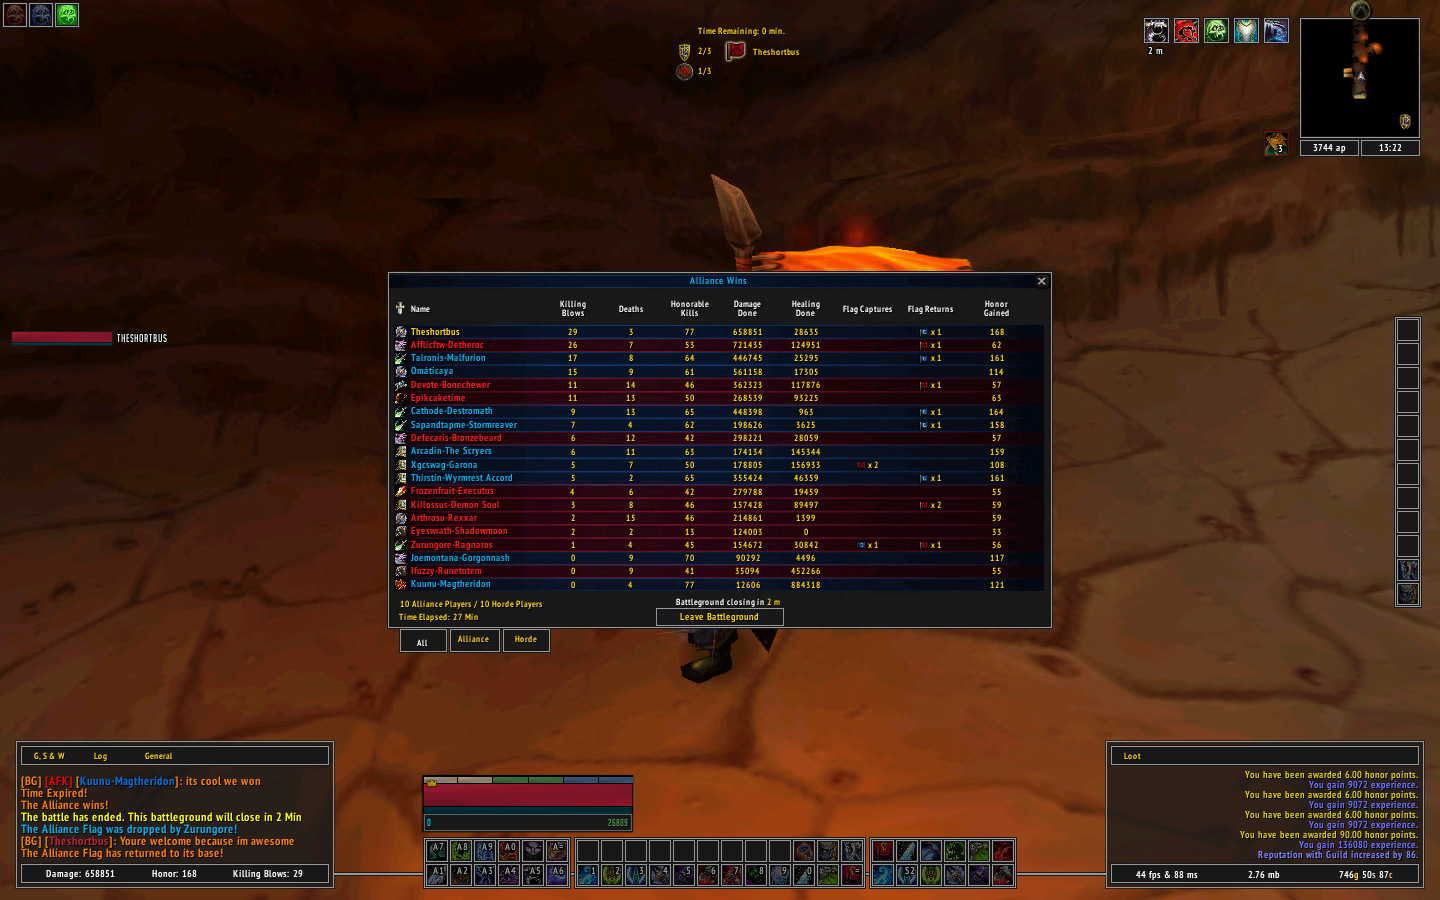 badkarma games lulz arcane less with only week been 1550 going more haste when 53018 shatter frost life point coherence tonight beyond some screenshots lolfrostmage bricks post gets retarded deserves whatever also